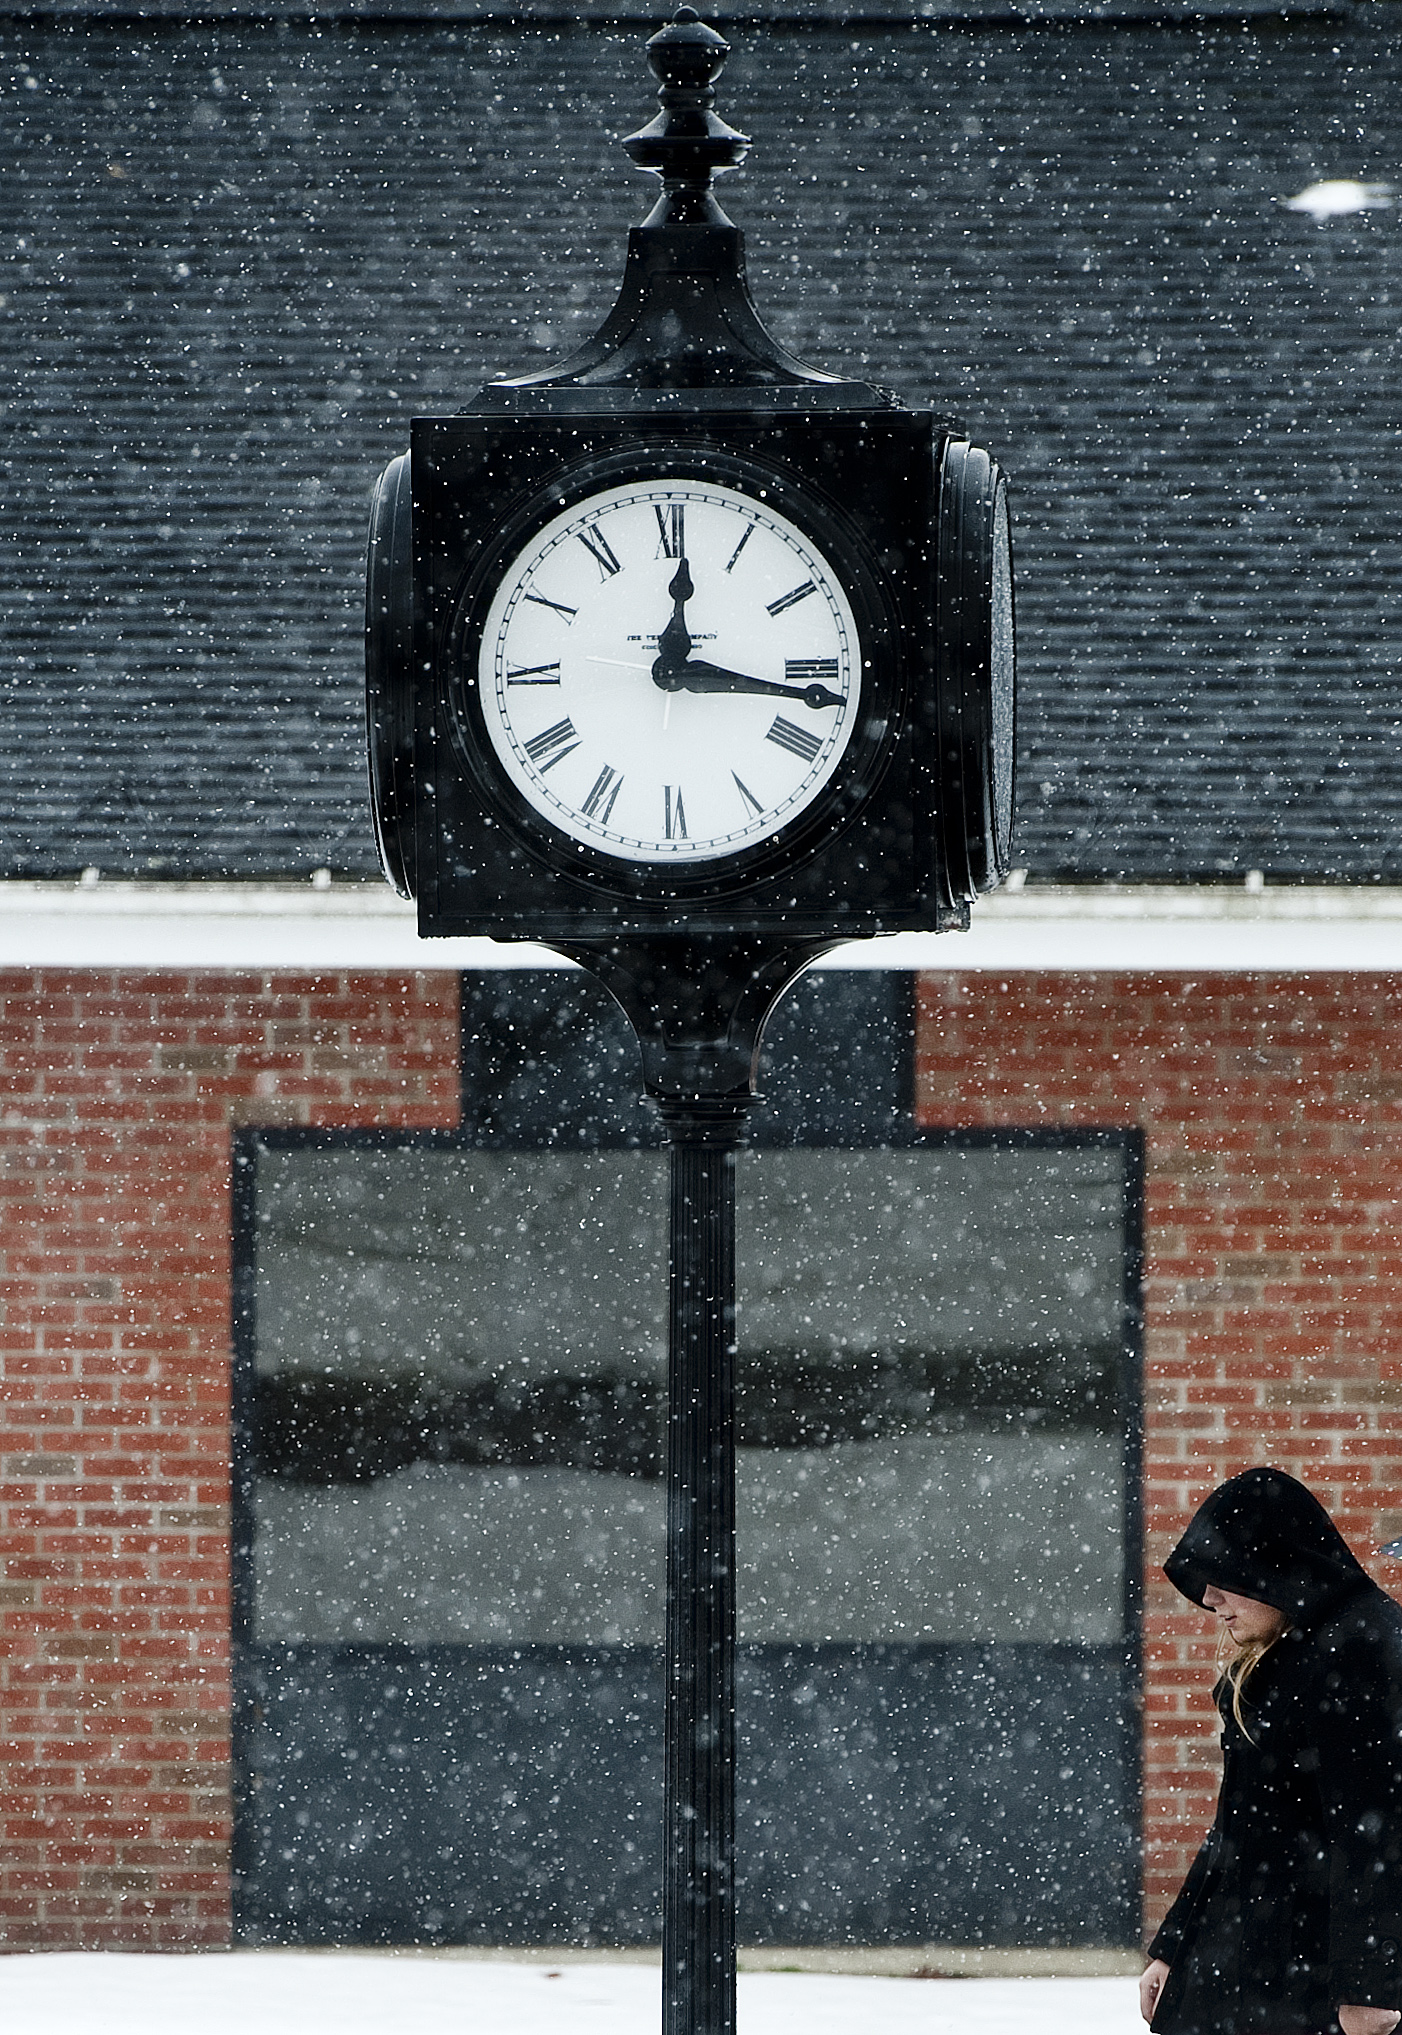 A wintery mix of freezing rain and snow surround a woman as she walks underneath a clock at the University of Pittsburgh at Greensburg on Tuesday, Feb. 16, 2016.